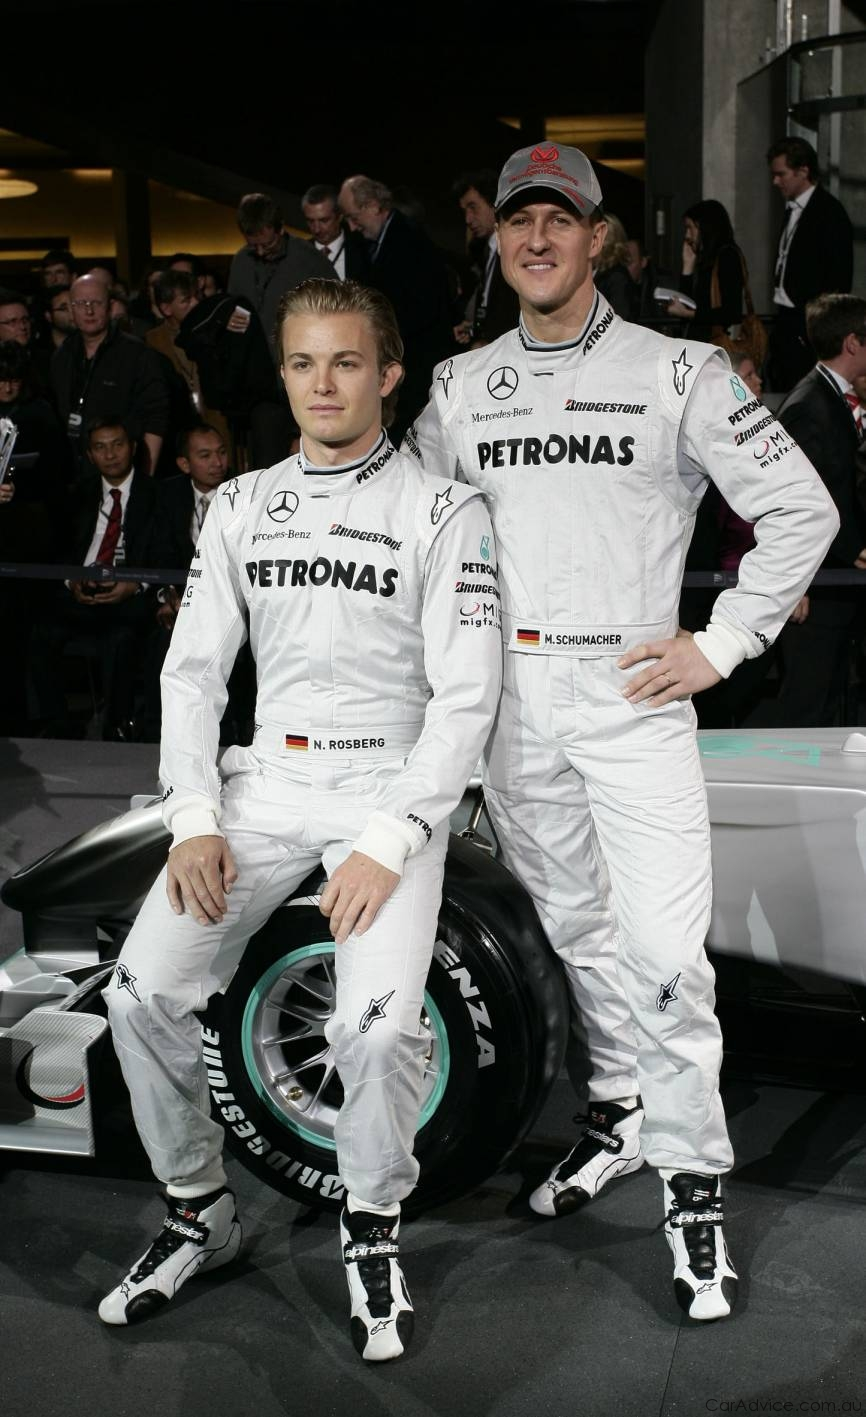 Santa Fe Suv >> Mercedes-Benz presents Mercedes GP Petronas F1 team - photos | CarAdvice